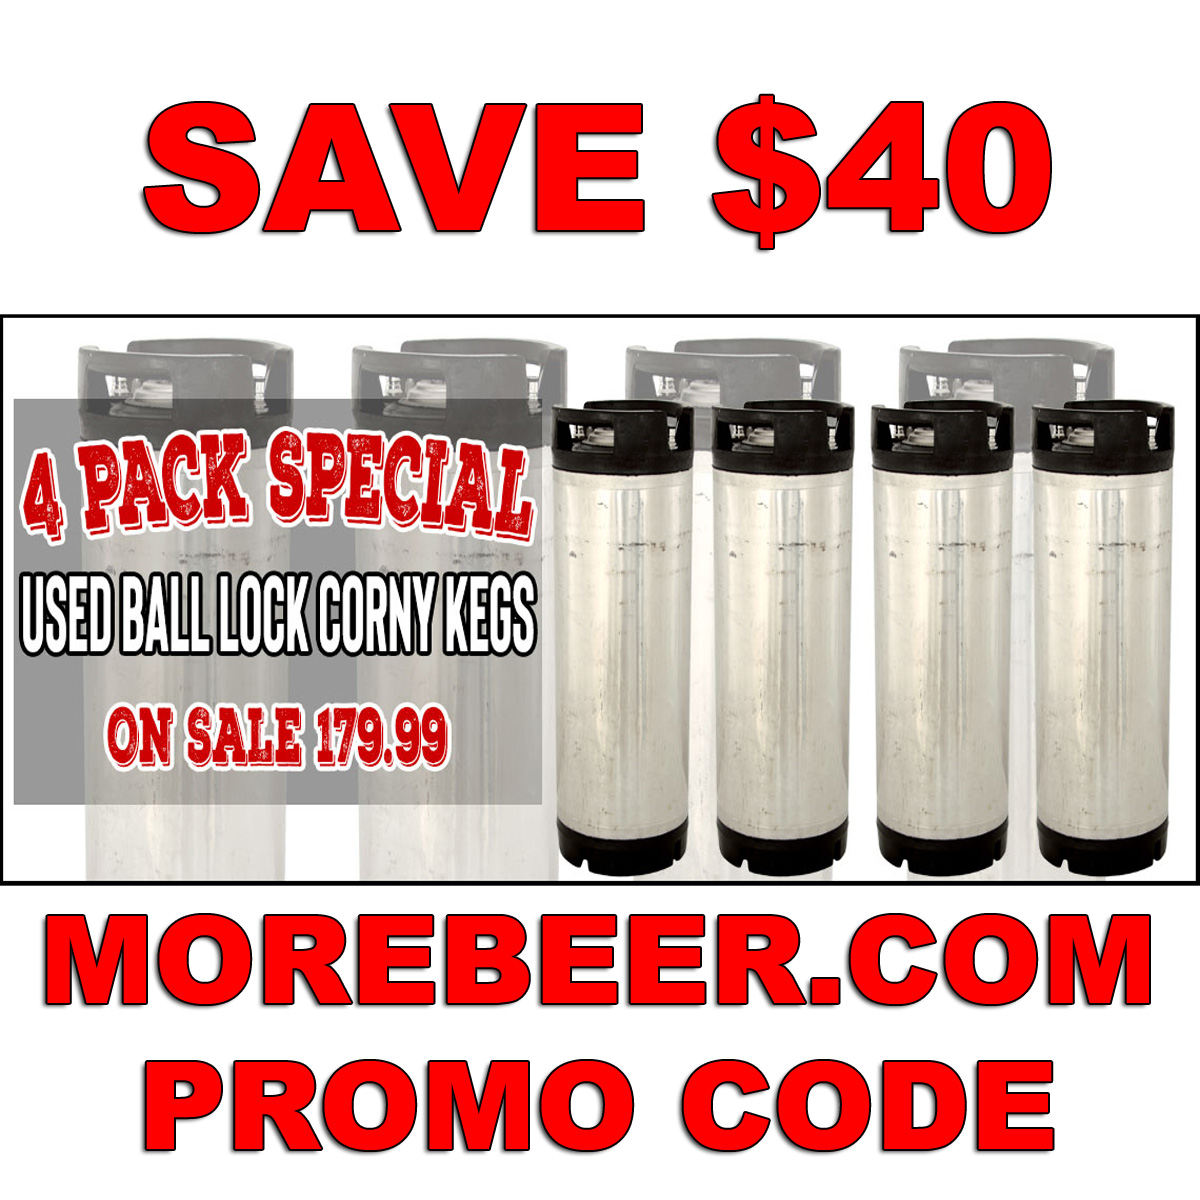 MoreBeer Save $40 On A 4-Pack Of Ball Lock Kegs Coupon Code for MoreBeer.com Coupon Code